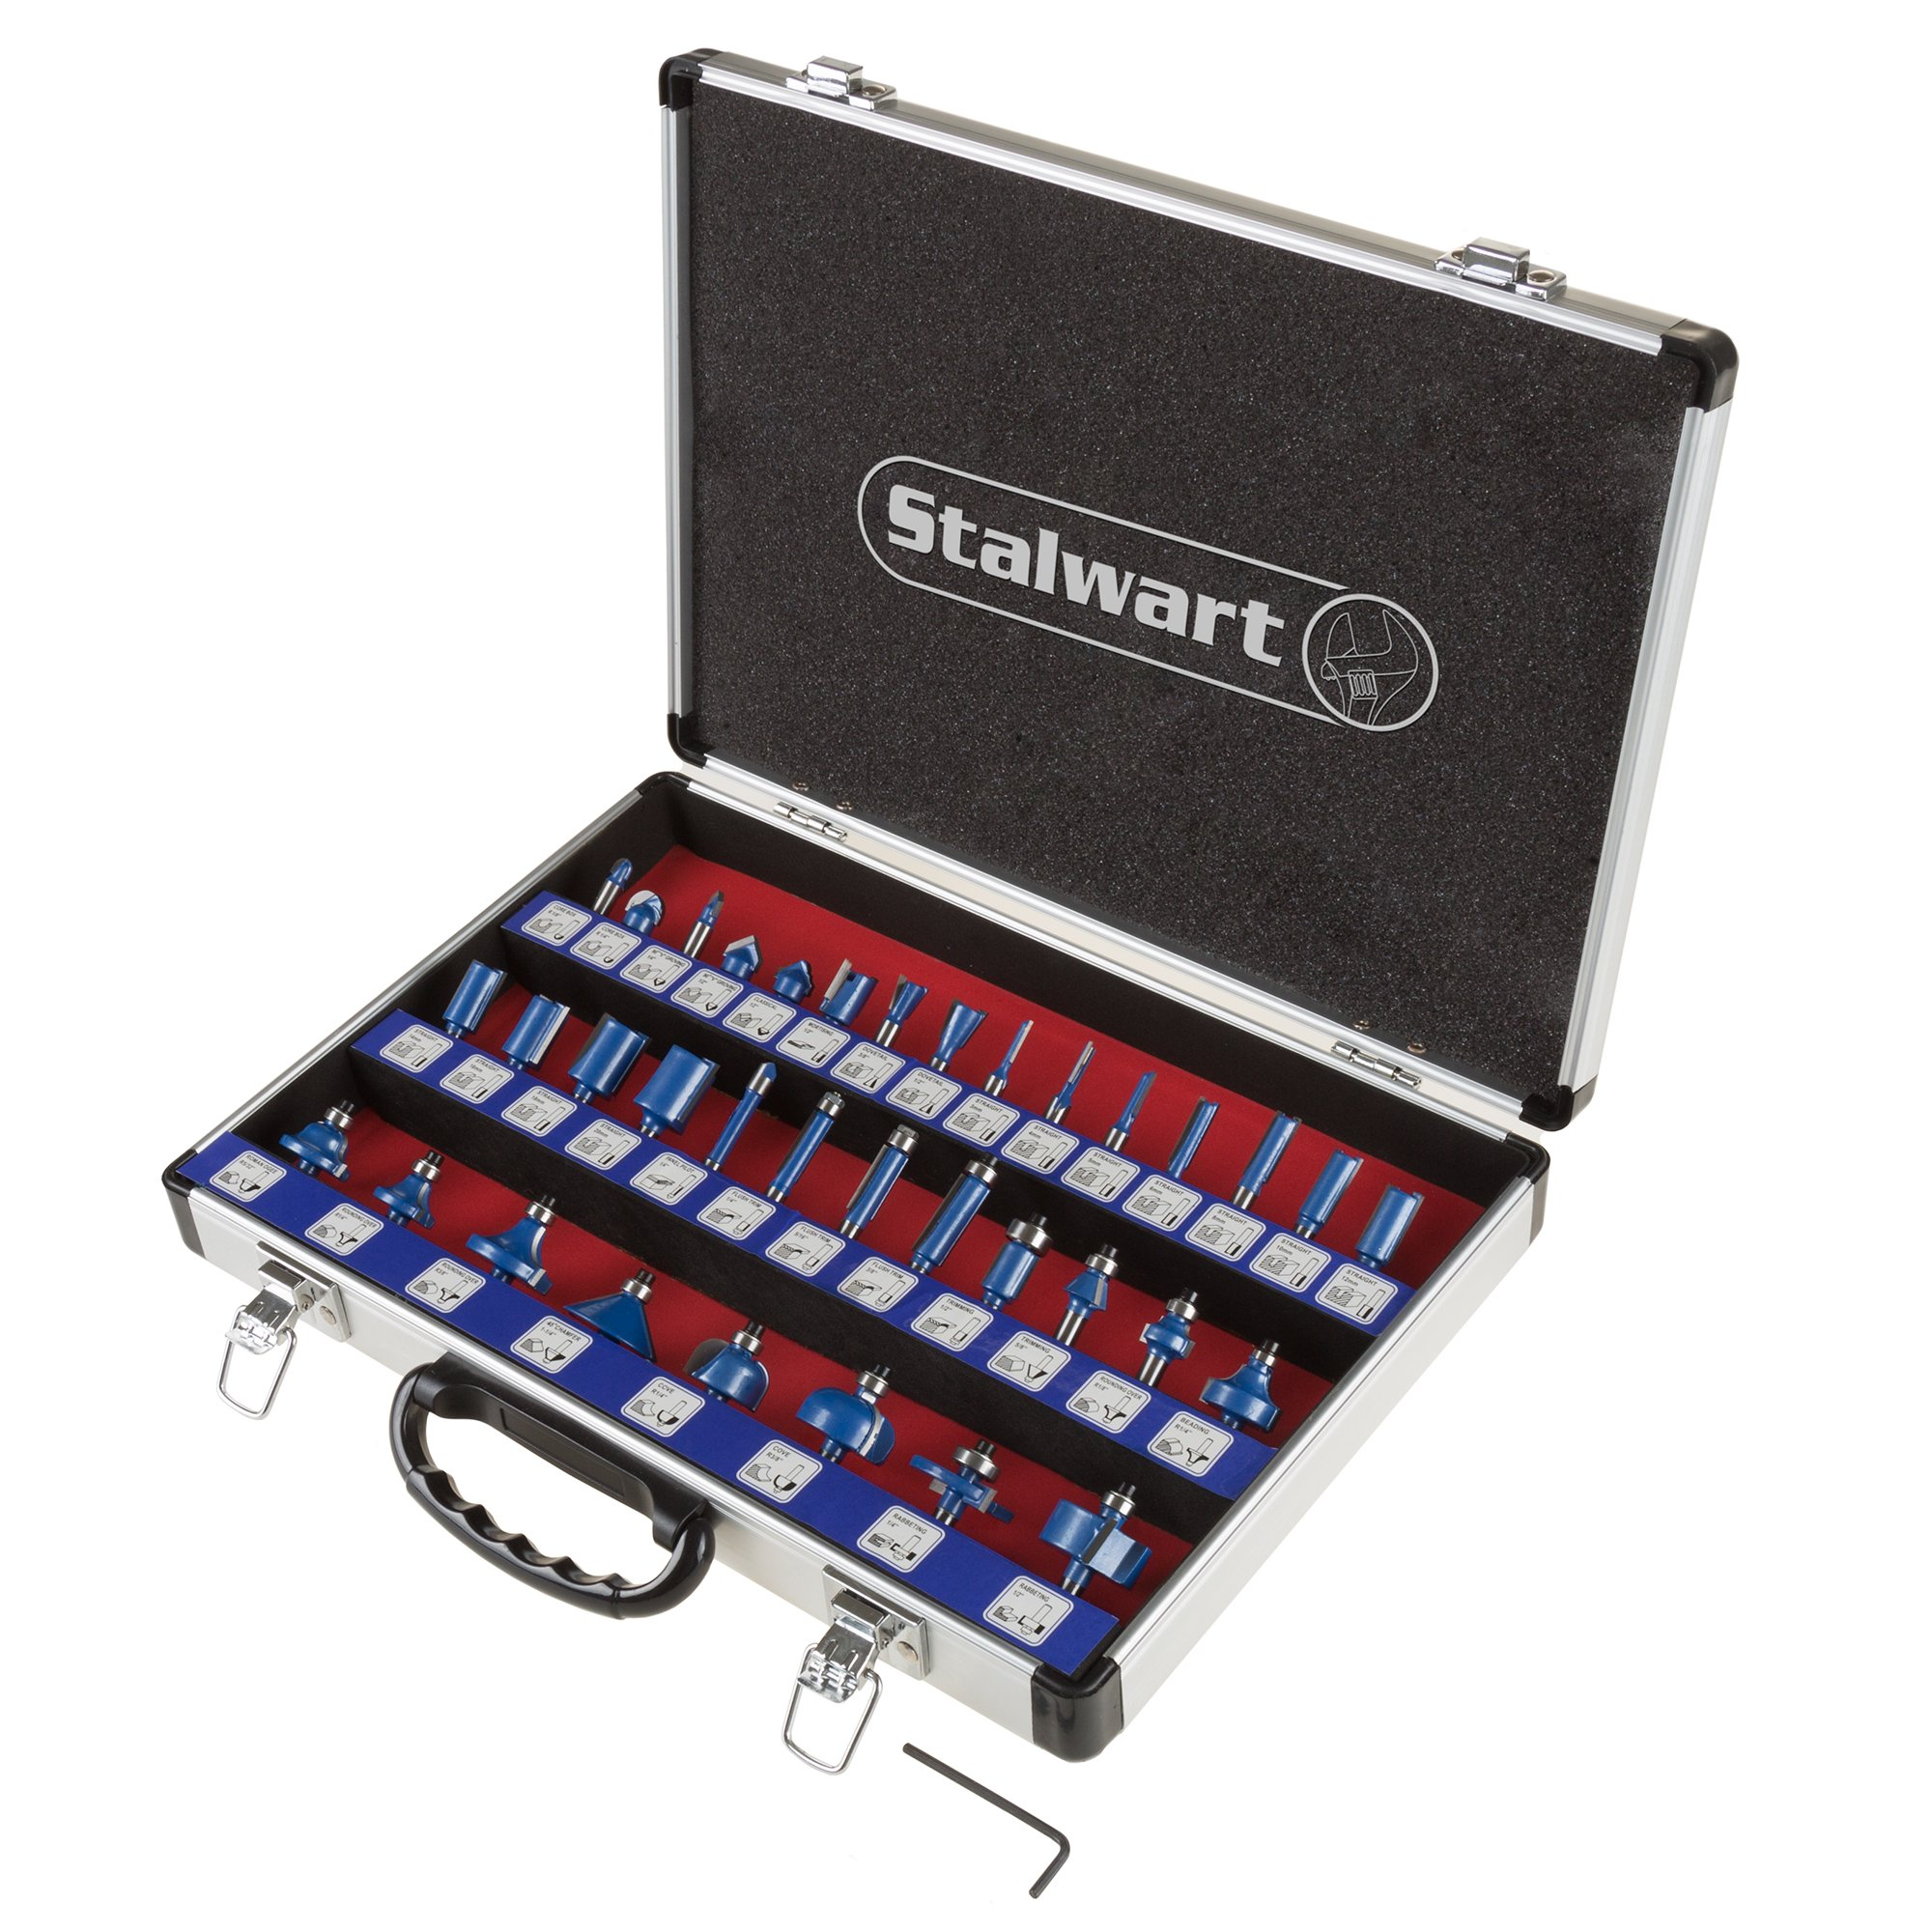 """Router Bit Set- 35 Piece Kit with ¼"""" Shank and Aluminum Storage Case By Stalwart (Woodworking Tools for Home Improvement and DIY)"""